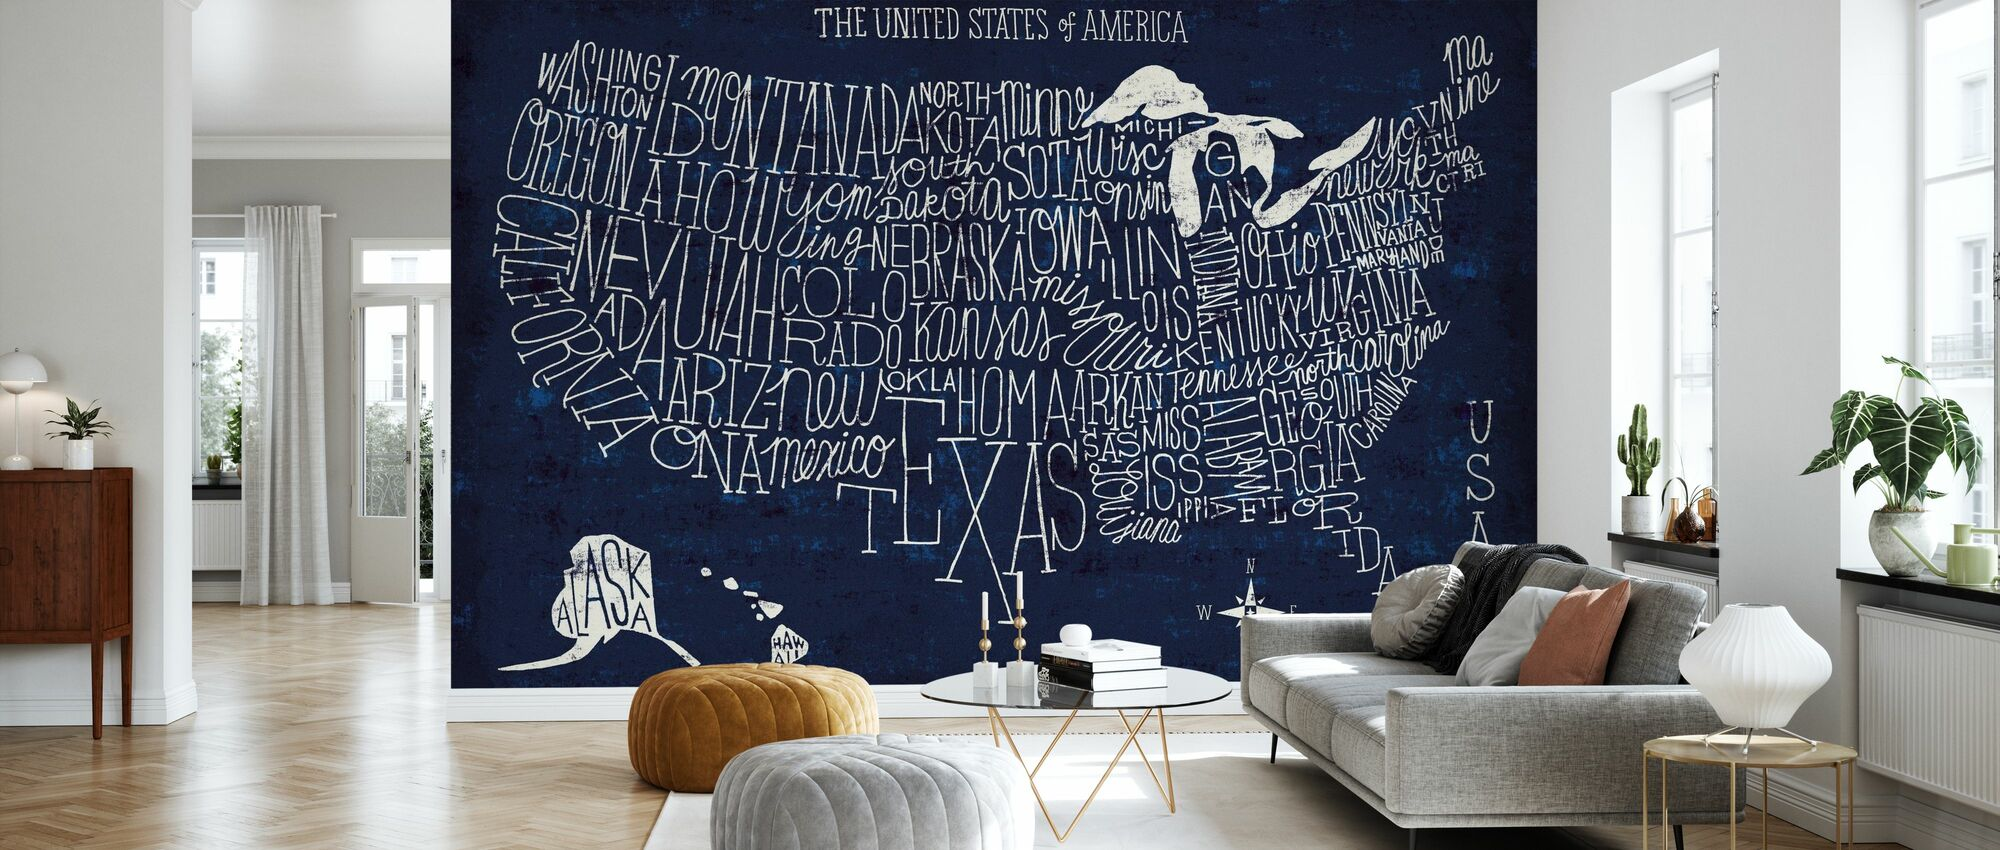 Hand Lettered US Map Blueprint - Wallpaper - Living Room